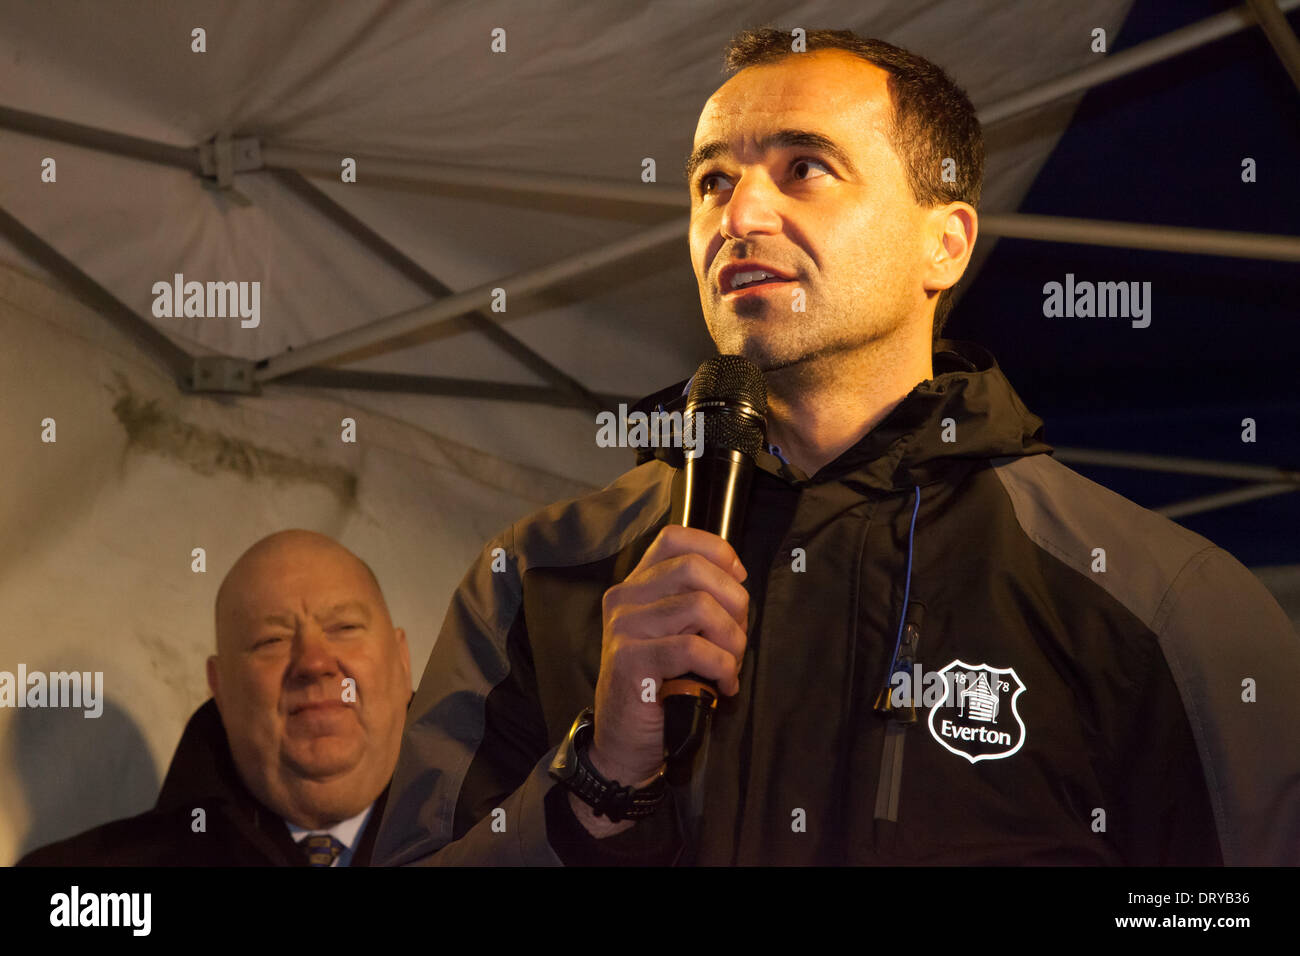 Liverpool, UK. 4th February 2014. Liverpool Mayor Joe Anderson watches as Everton manager Roberto Martinez gives a speech during a switch on ceremony in Everton. Liverpool's mayor and the Everton boss were in Browside Gardens to turn on a new projection of Everton's crest. Credit:  Adam Vaughan/Alamy Live News - Stock Image